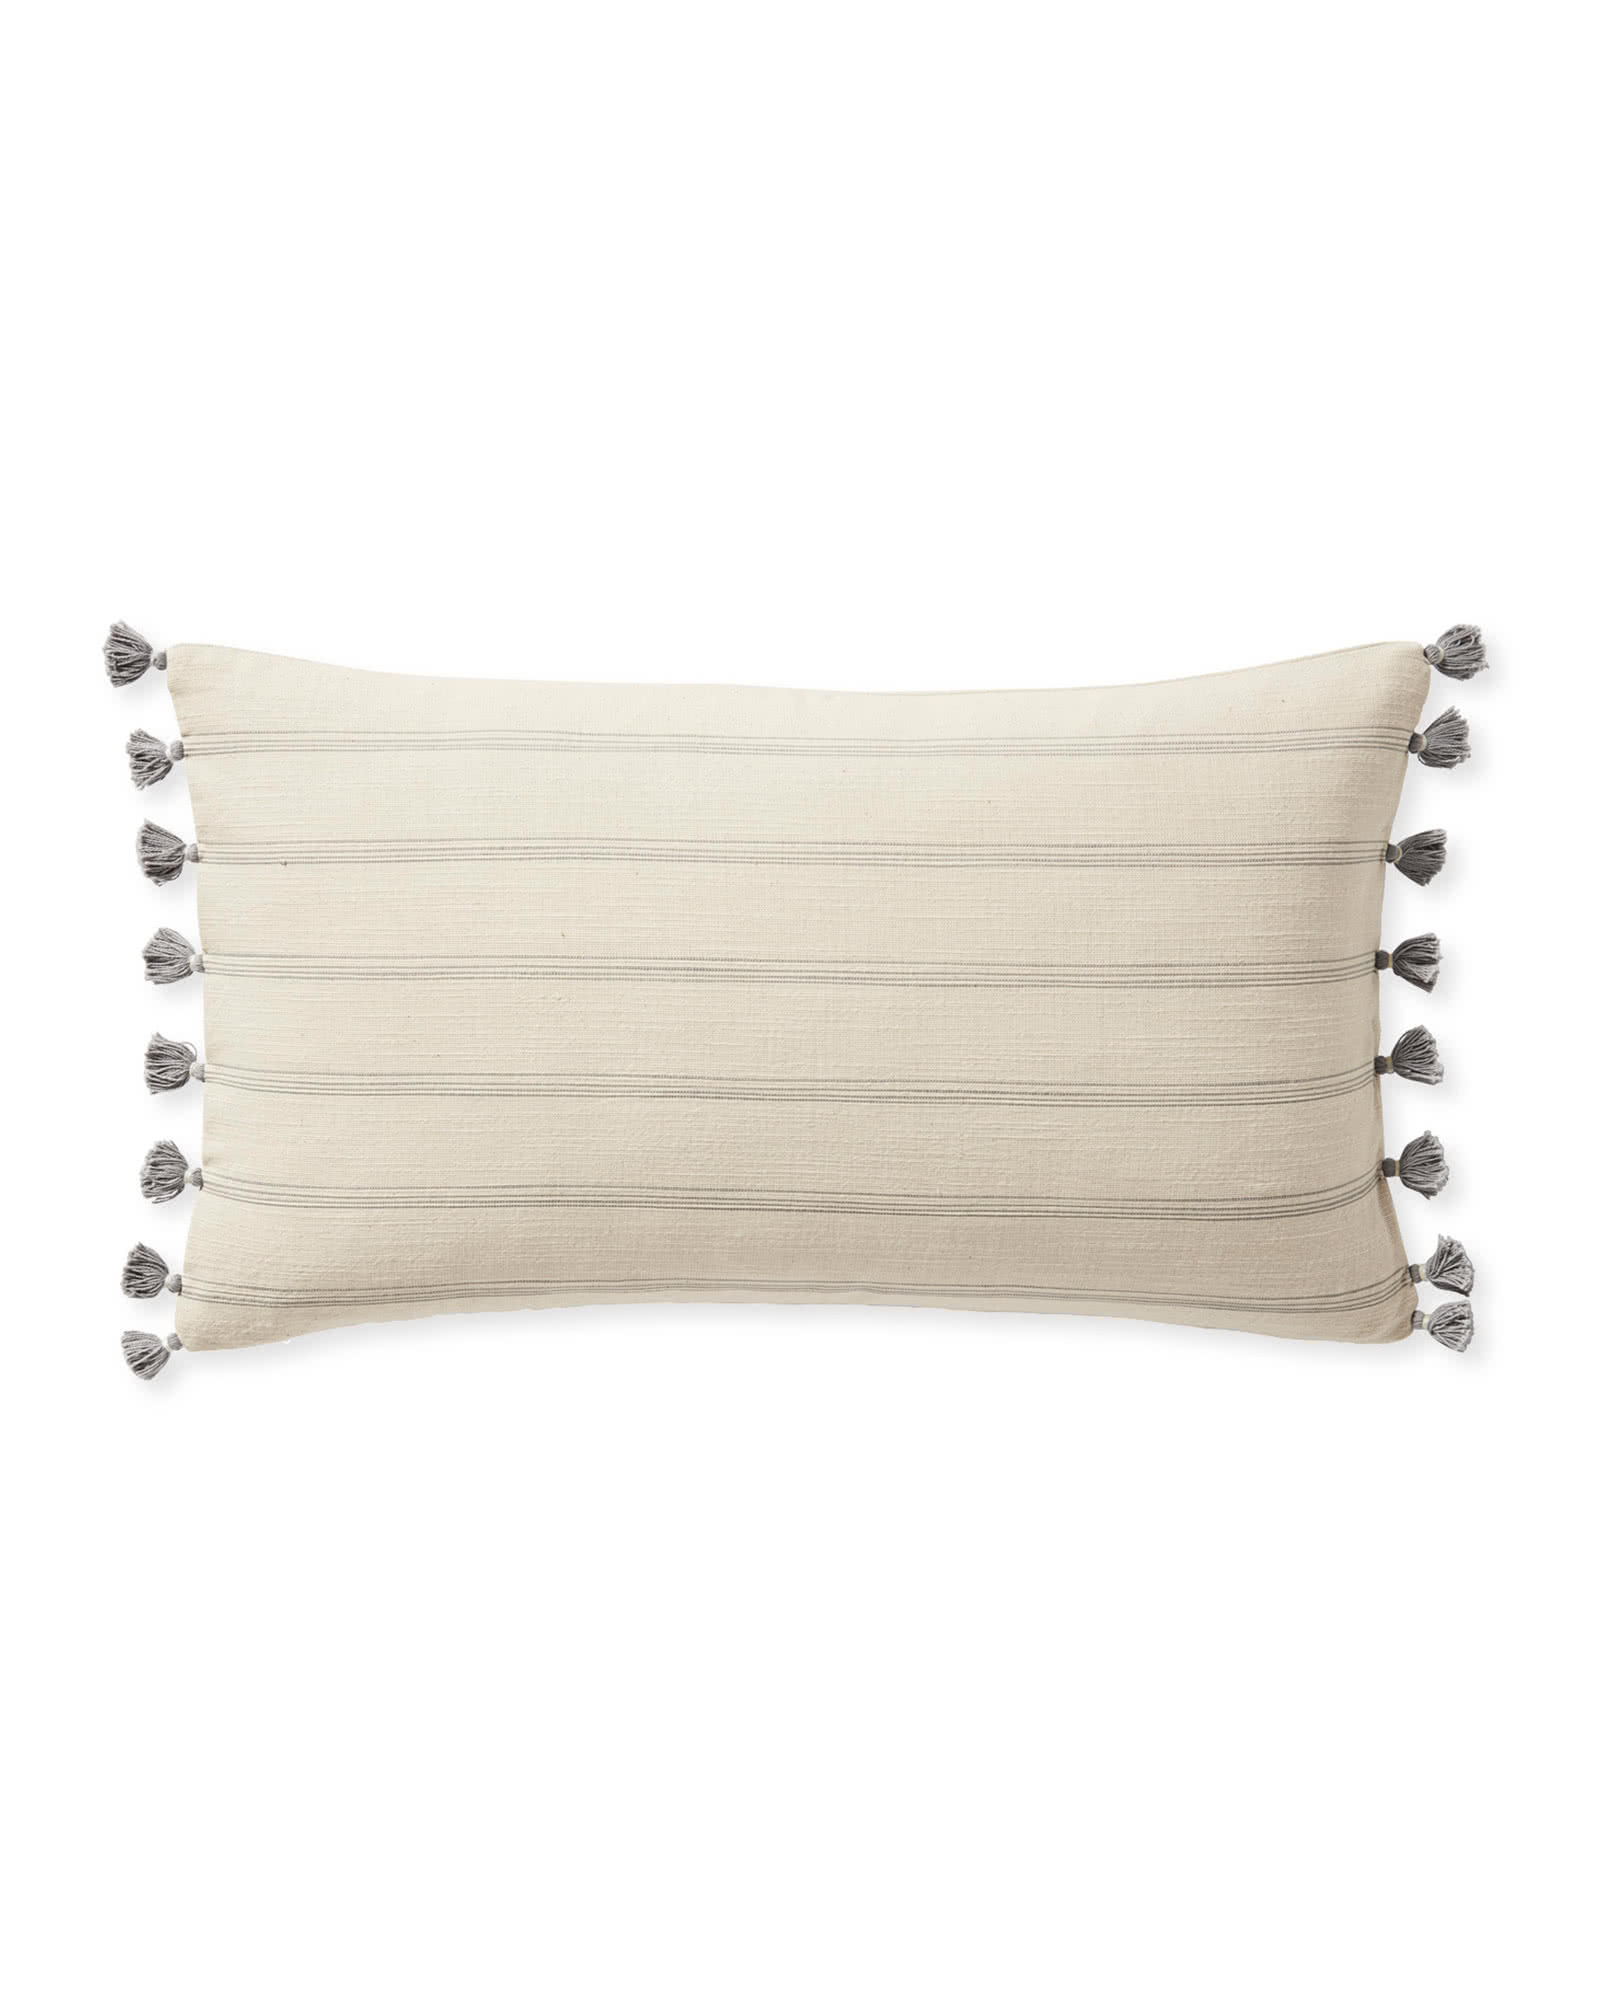 Alsworth Pillow Cover, Fog